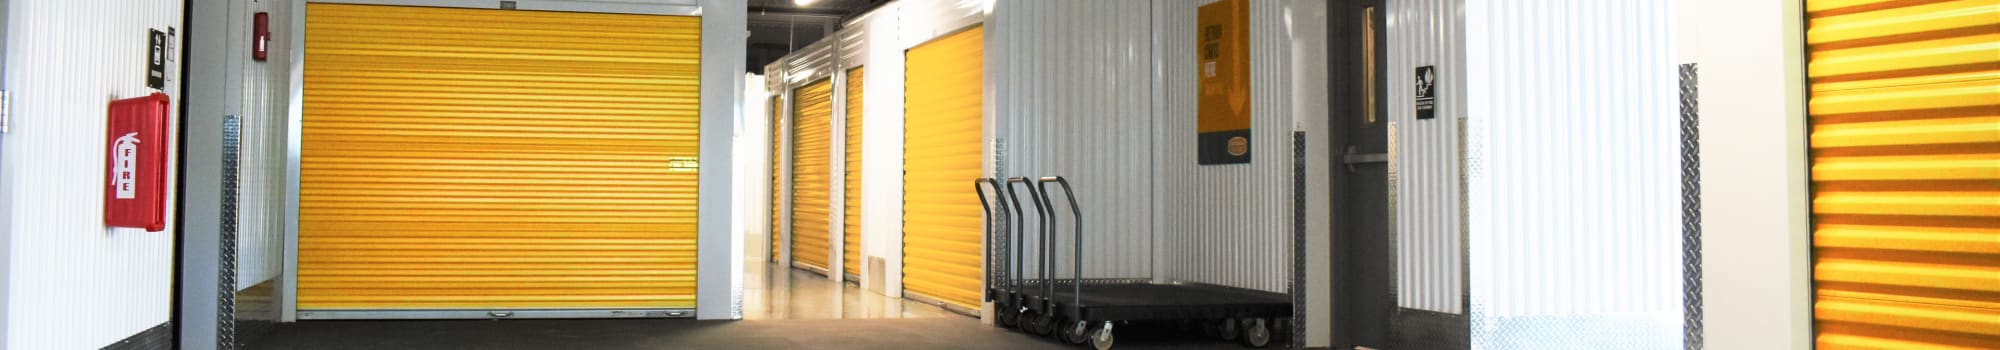 Features at Storage 365 in Plano, Texas